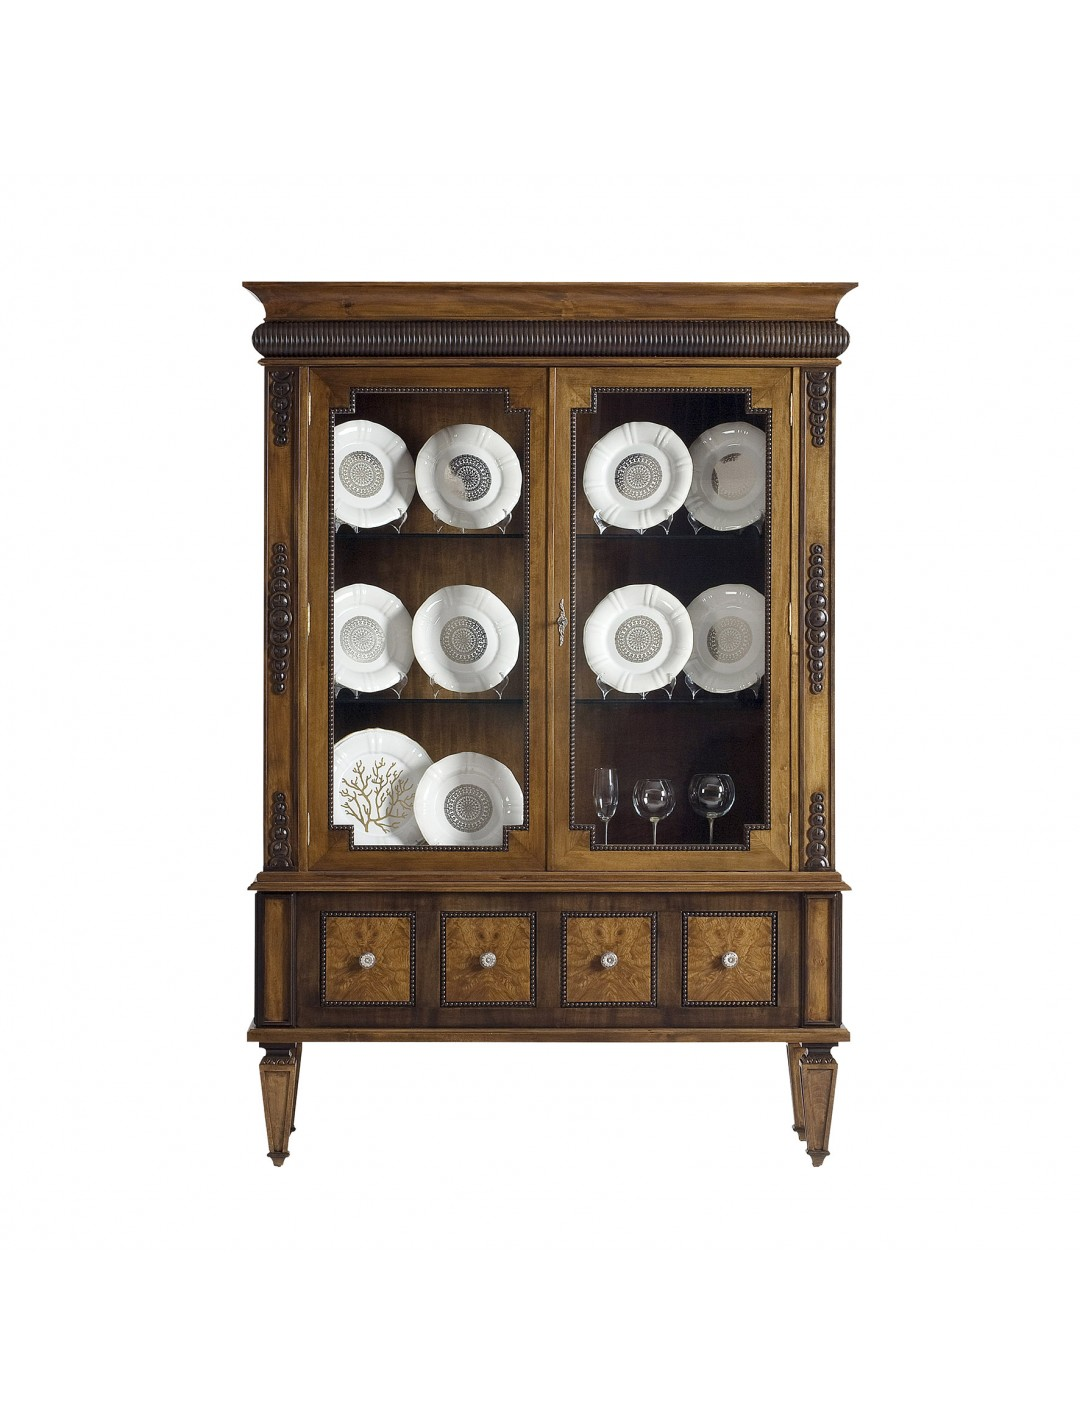 DECO DISPLAY CABINET, AGED OLIVE TREE ROOT VENEER DETAILS, WITH GLASS DOORS,